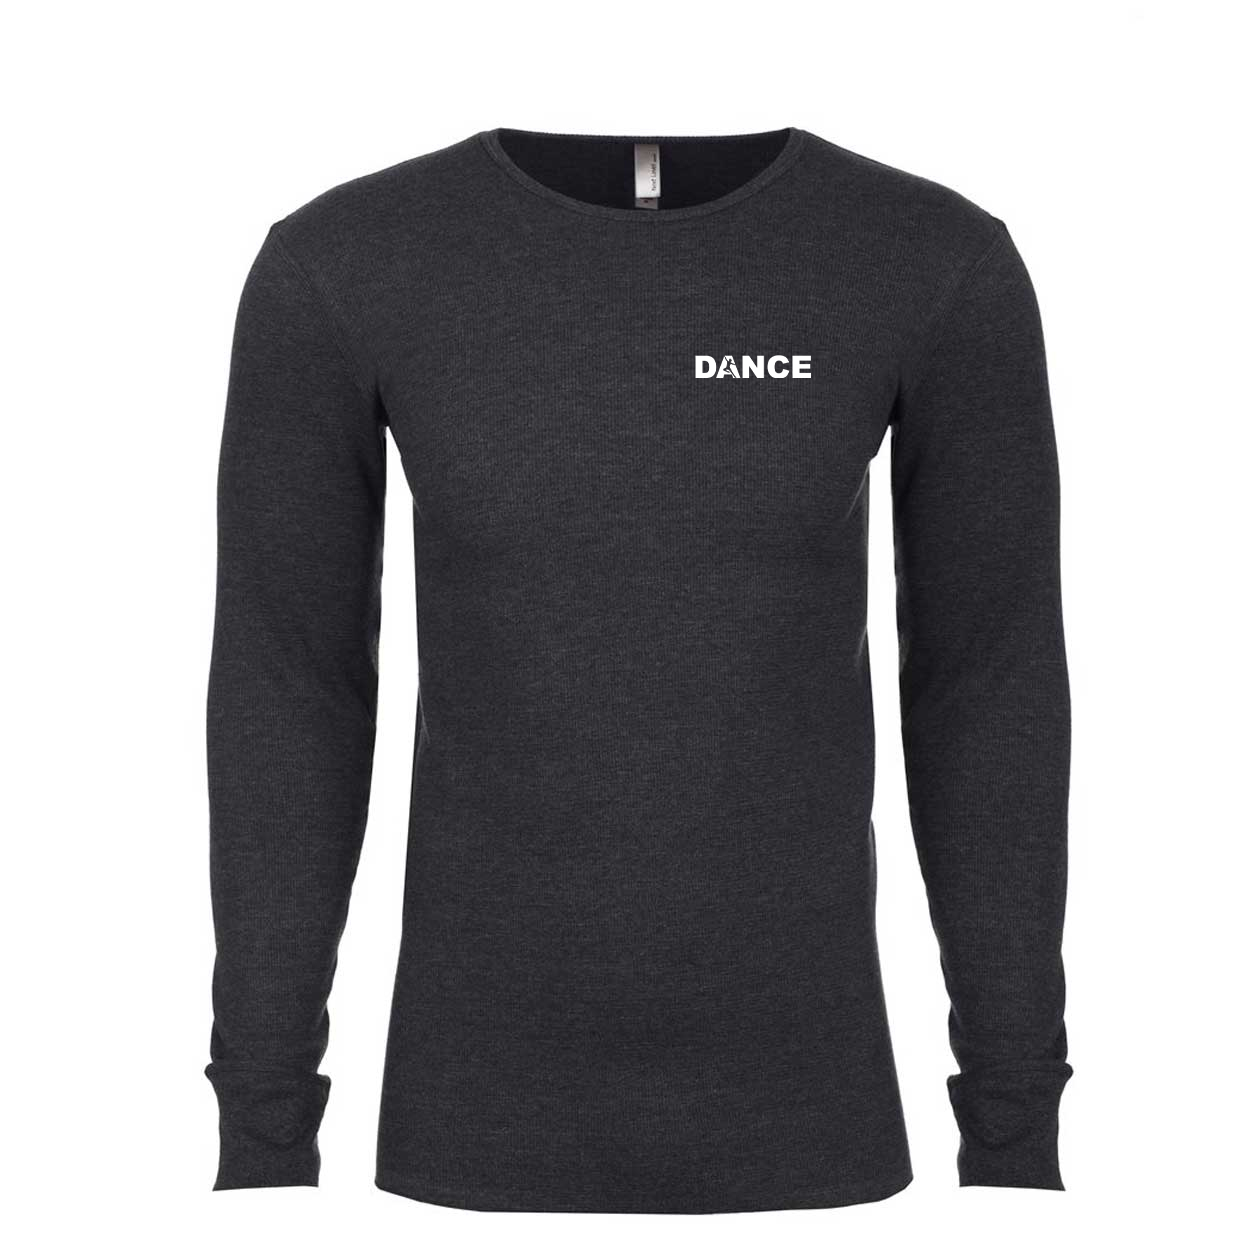 Dance Silhouette Logo Long Sleeve Thermal Shirt Heather Charcoal (White Logo)